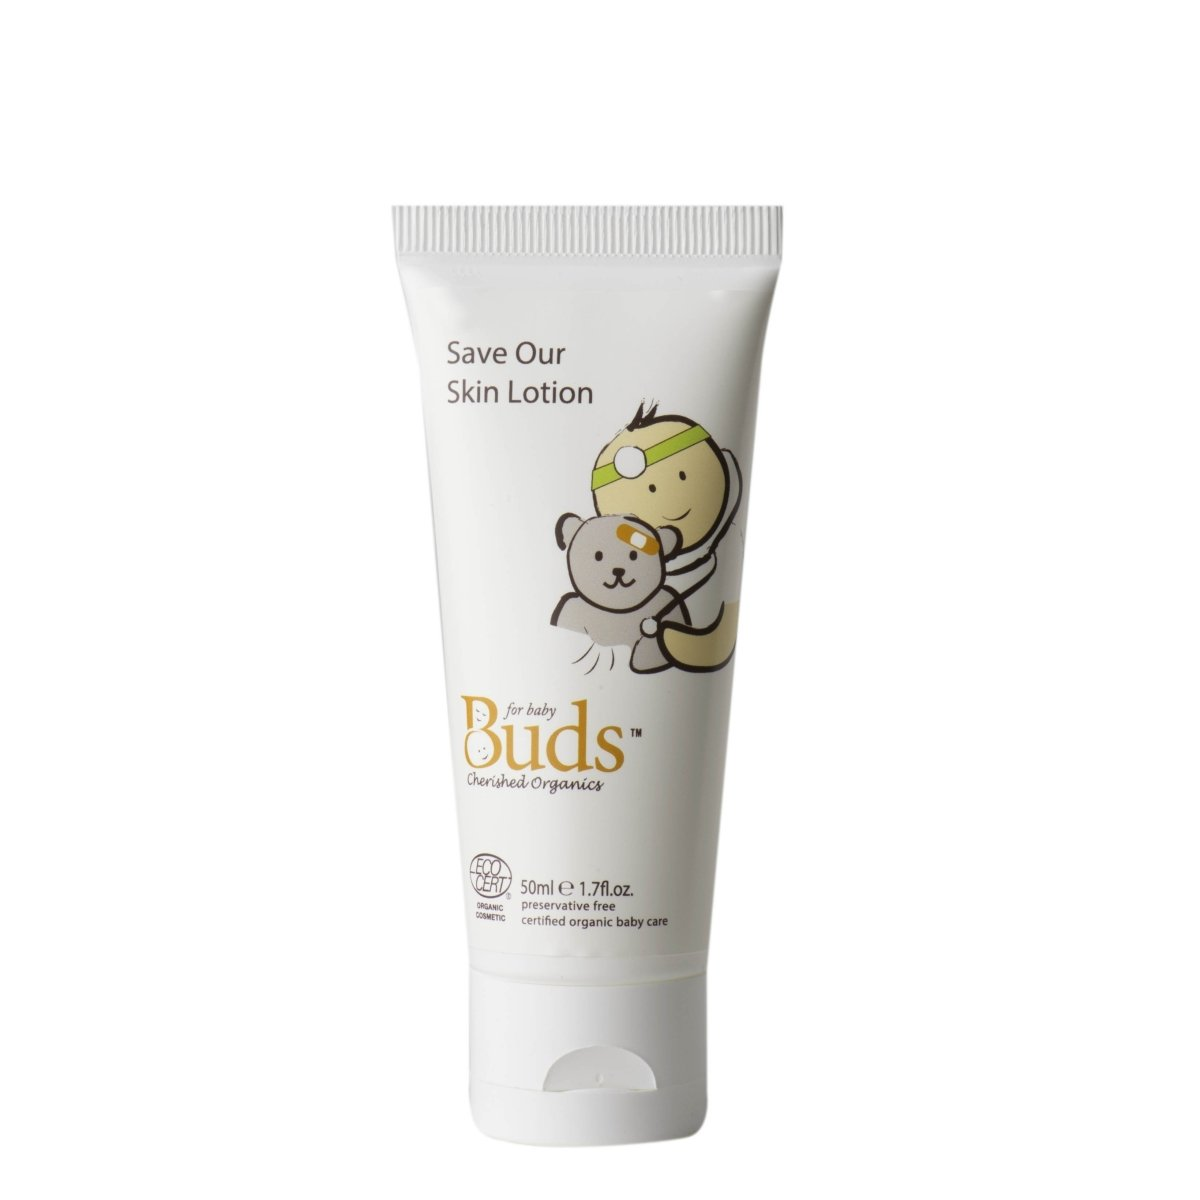 BUDS Save Our Skin Lotion 有機萬用護理膏 [50ml] - MINT Organics